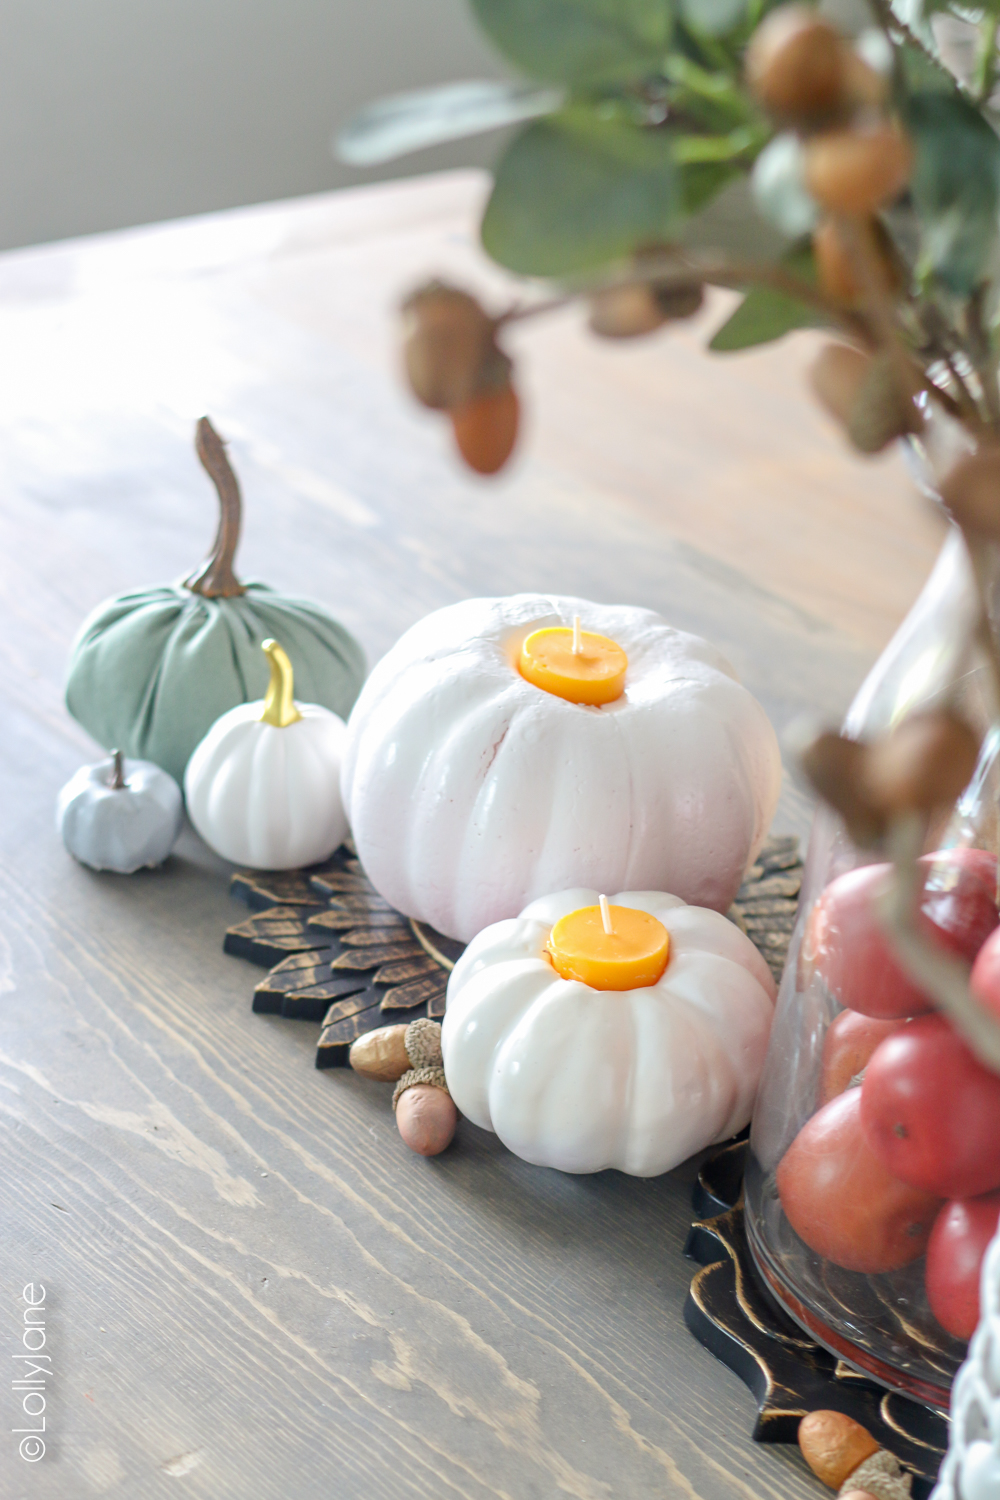 Plop a candle from the dollar store into a painted dollar store pumpkin to add some ambience and class to your fall table! Total cost, $2, wow!! CLICK to see other dollar store fall crafts! #diy #easytutorials #fallcrafts #falldecor